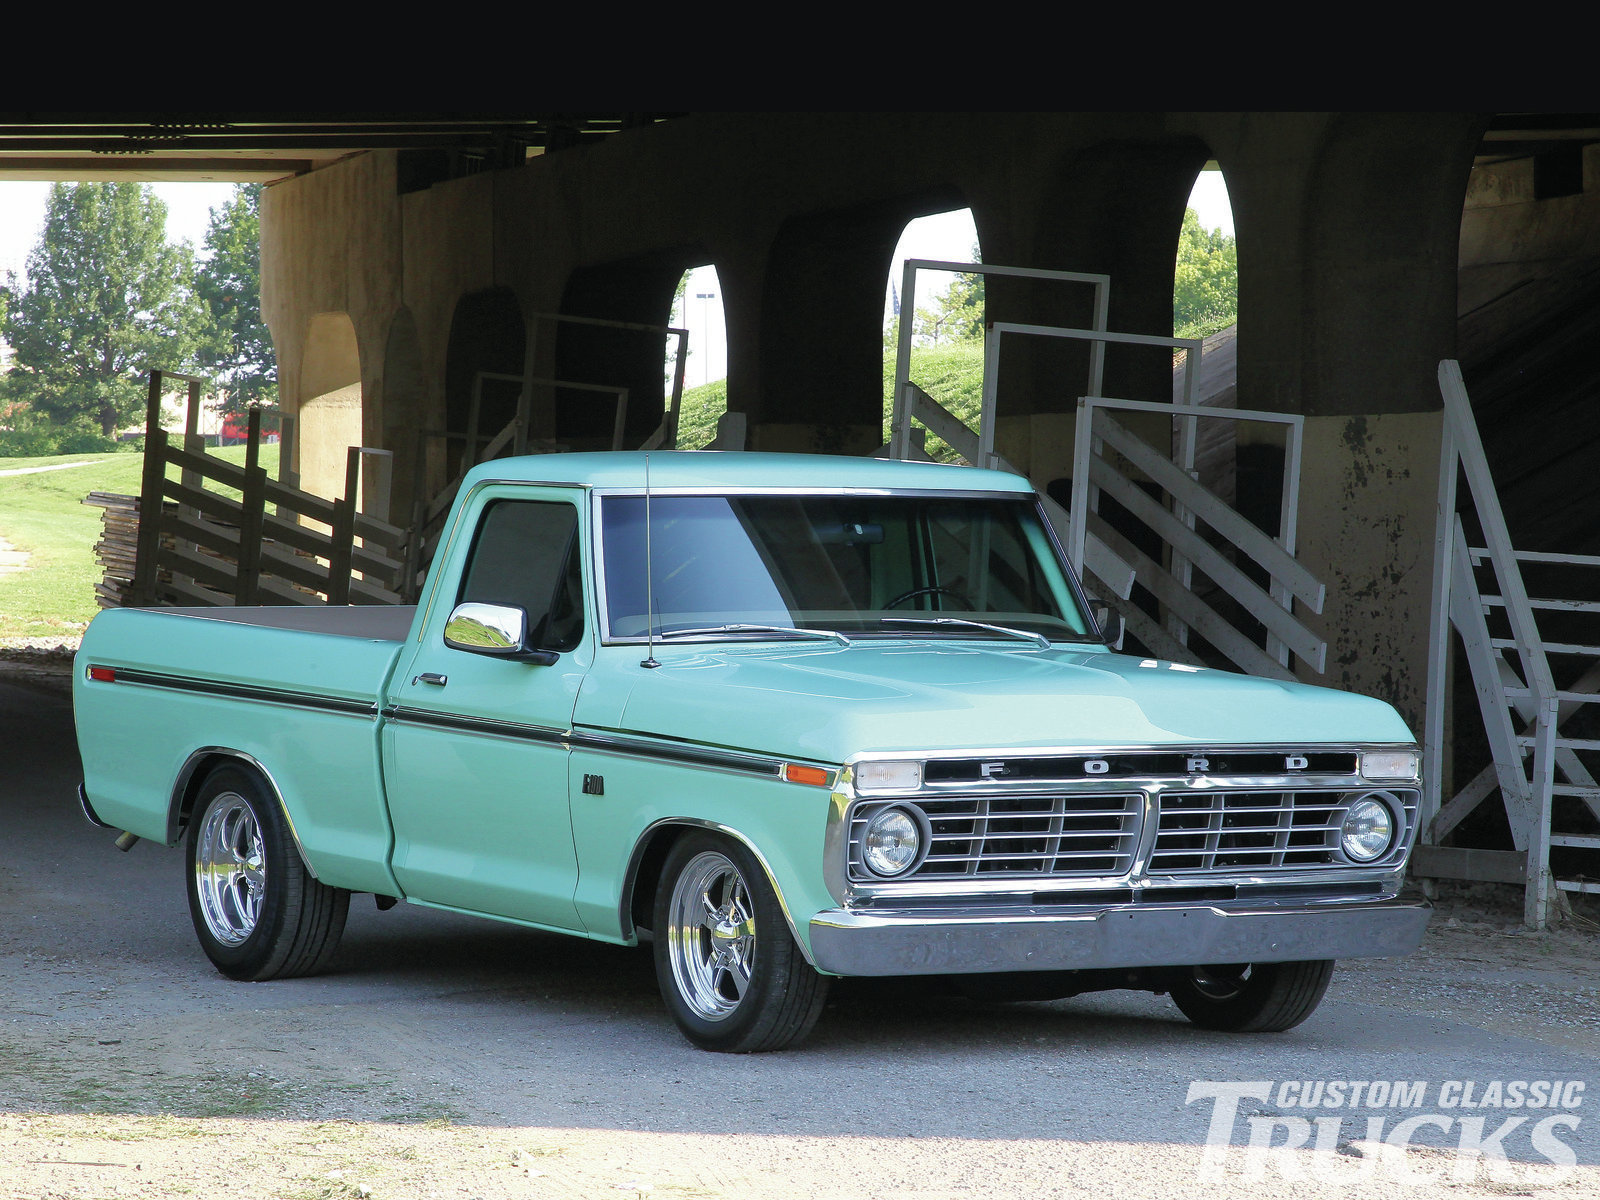 1976 Ford F 100 Wallpaper and Background Image 1600x1200 ID 1600x1200